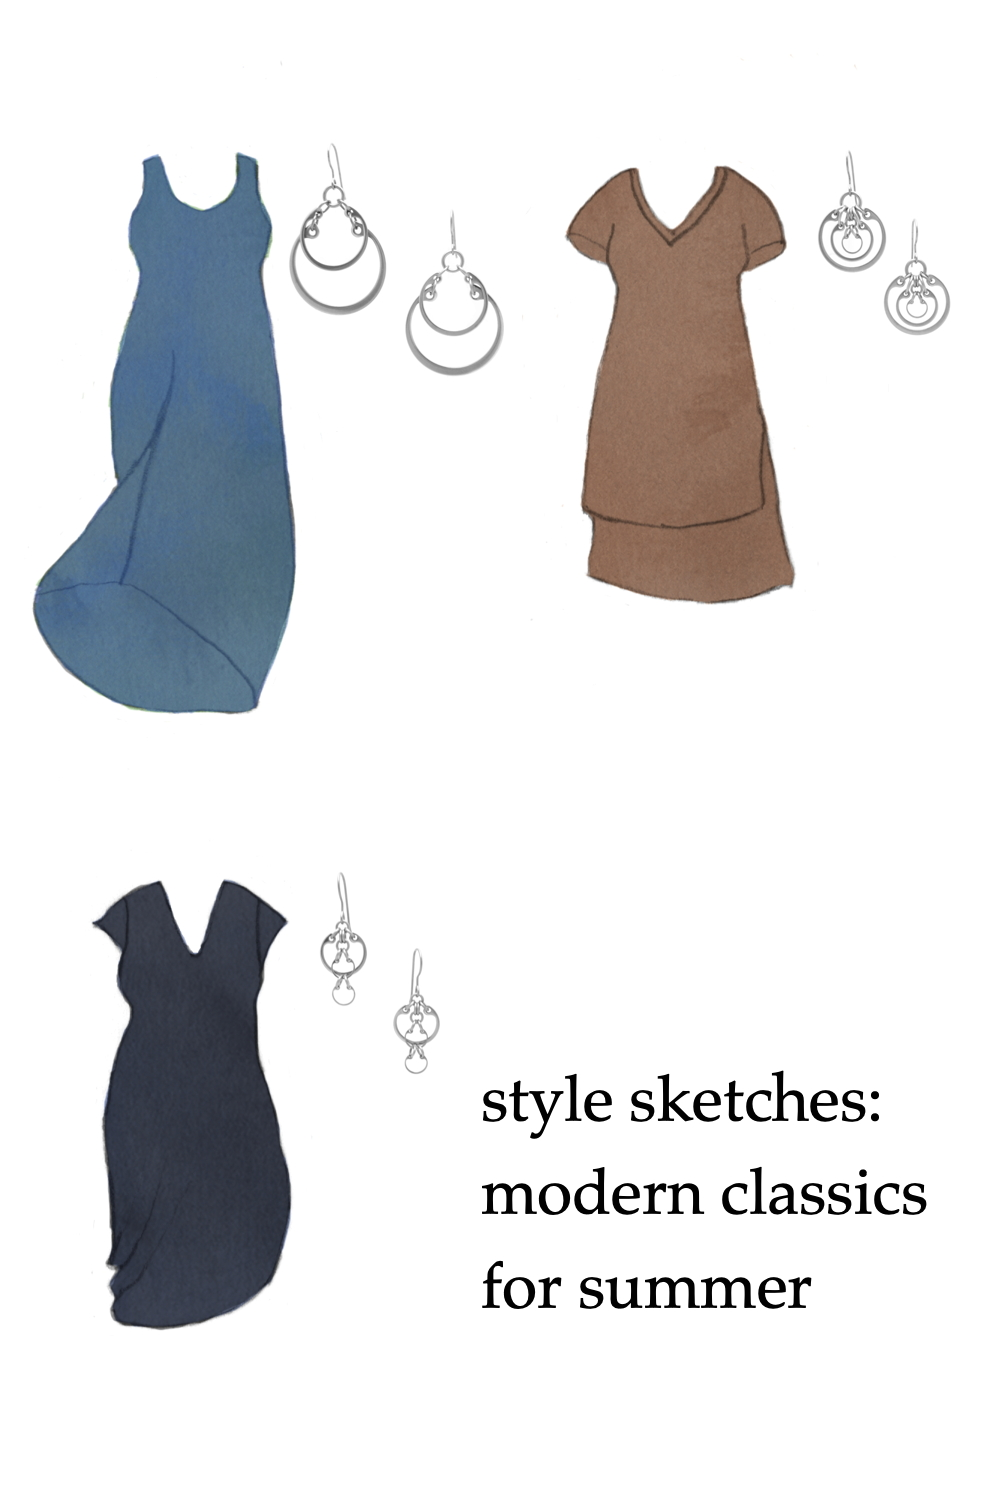 Compilation of three outfit ideas, featuring sketches of knit dresses by Universal Standard in blue, brown, and navy, and modern geometric circle earrings by Wraptillion. Text on image reads: style sketches: modern classics for summer.